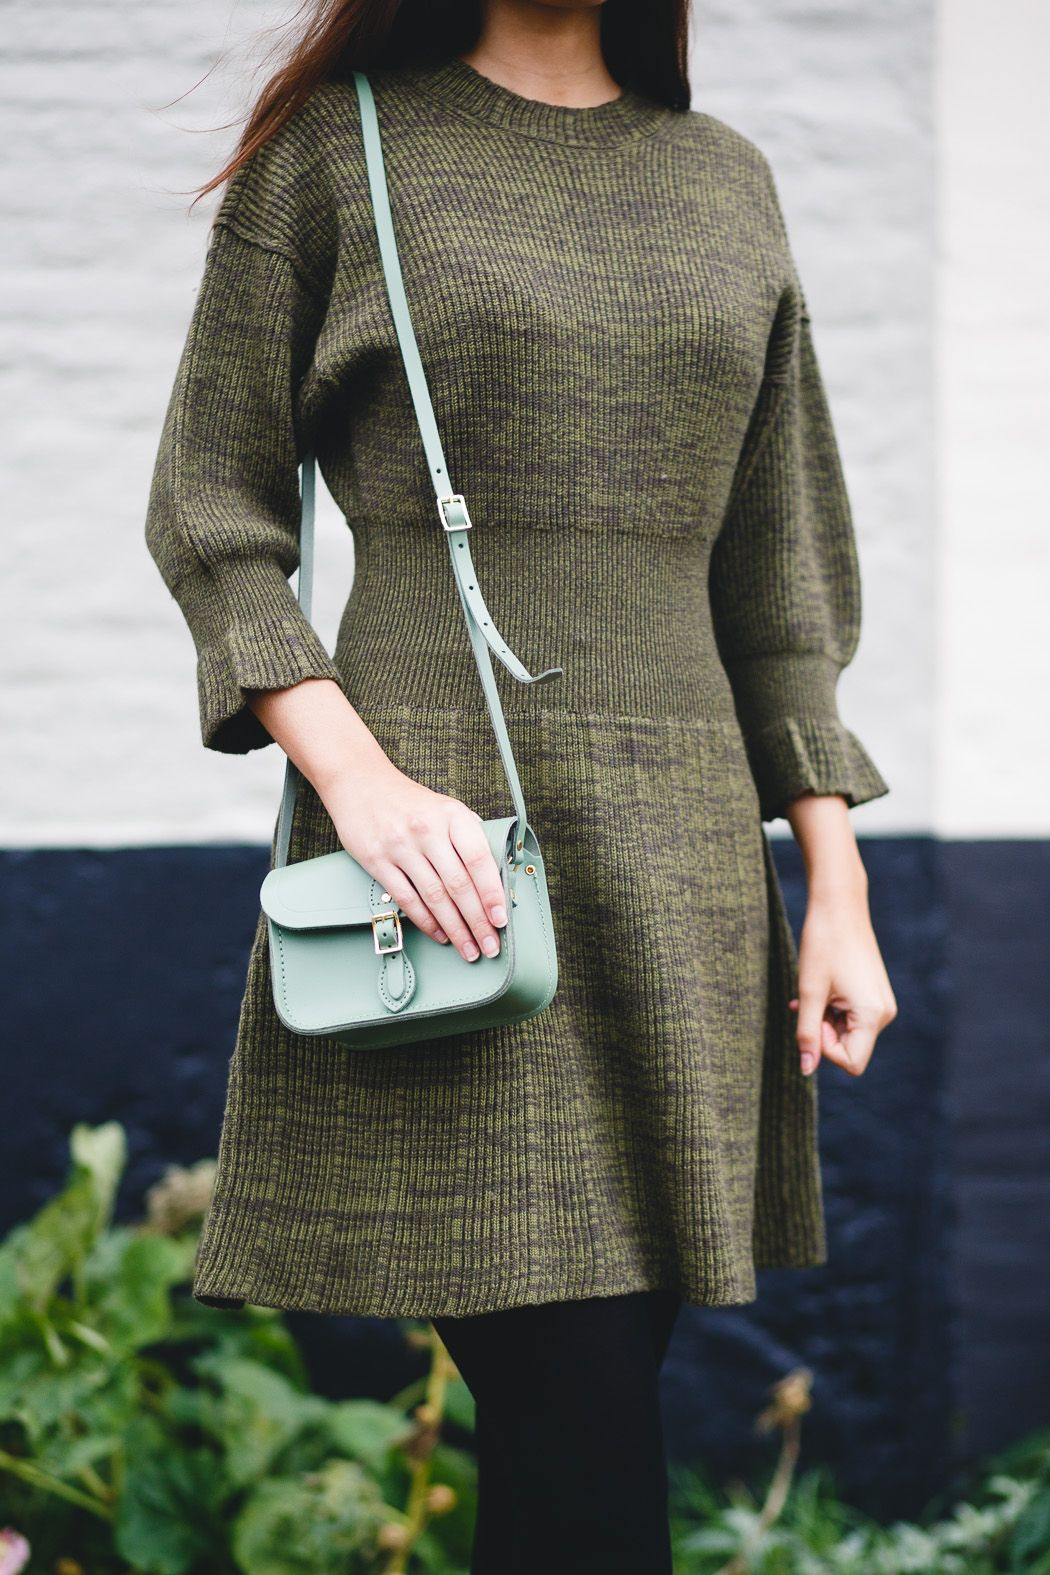 a74201dbee6815 Sonia by Sonia Rykiel peplum dress and satchel from The Cambridge Satchel  Company